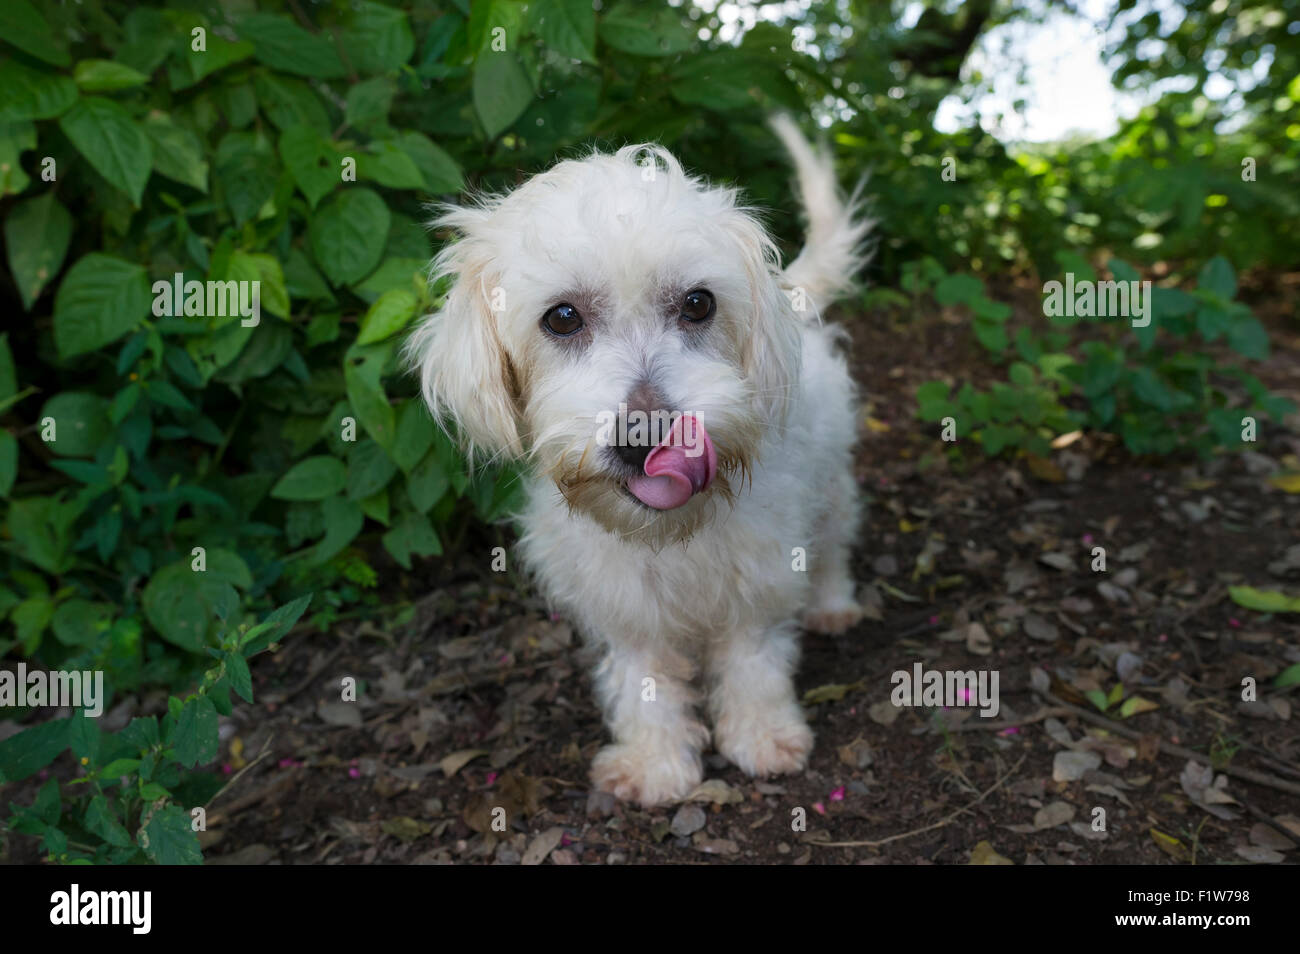 Cute dog is a cute whte fluffy adorable dog licking its nose and wagging its tail outdoors. - Stock Image